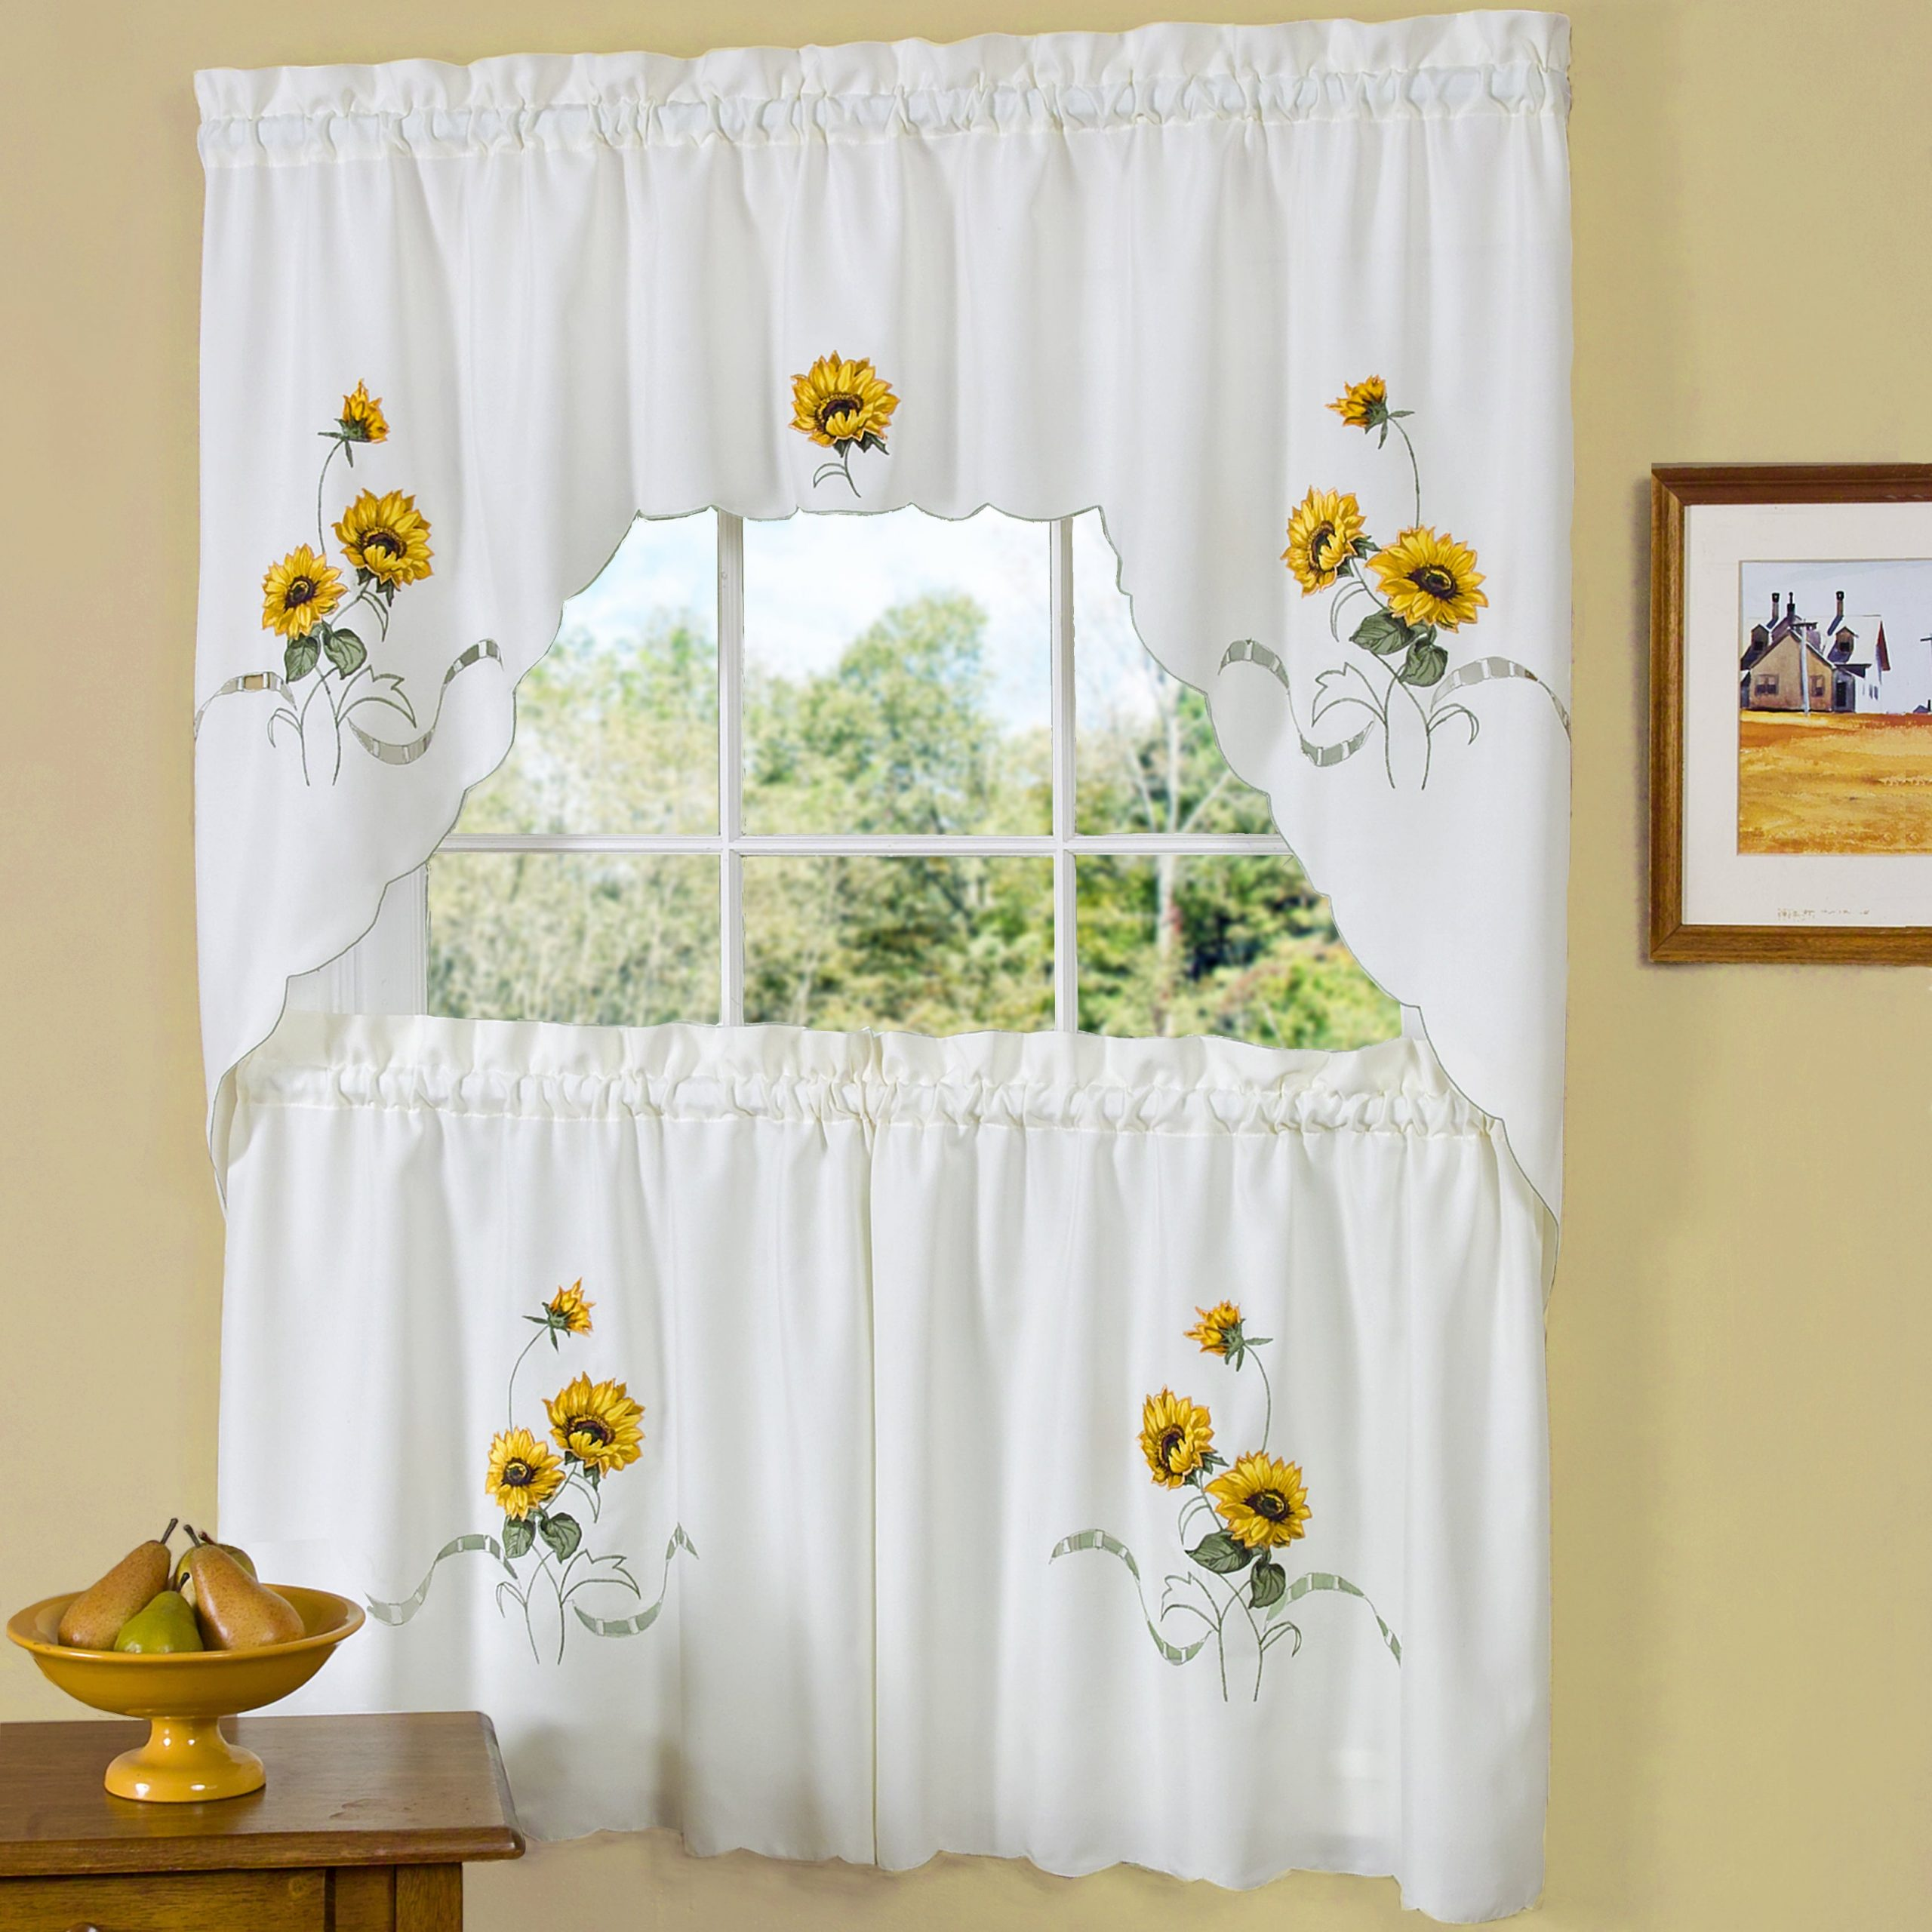 Current Window Curtains Sets With Colorful Marketplace Vegetable And Sunflower Print In Traditional Two Piece Tailored Tier And Swag Window Curtains Set With Embroidered Yellow Sunflowers – 36 Inch (View 2 of 20)